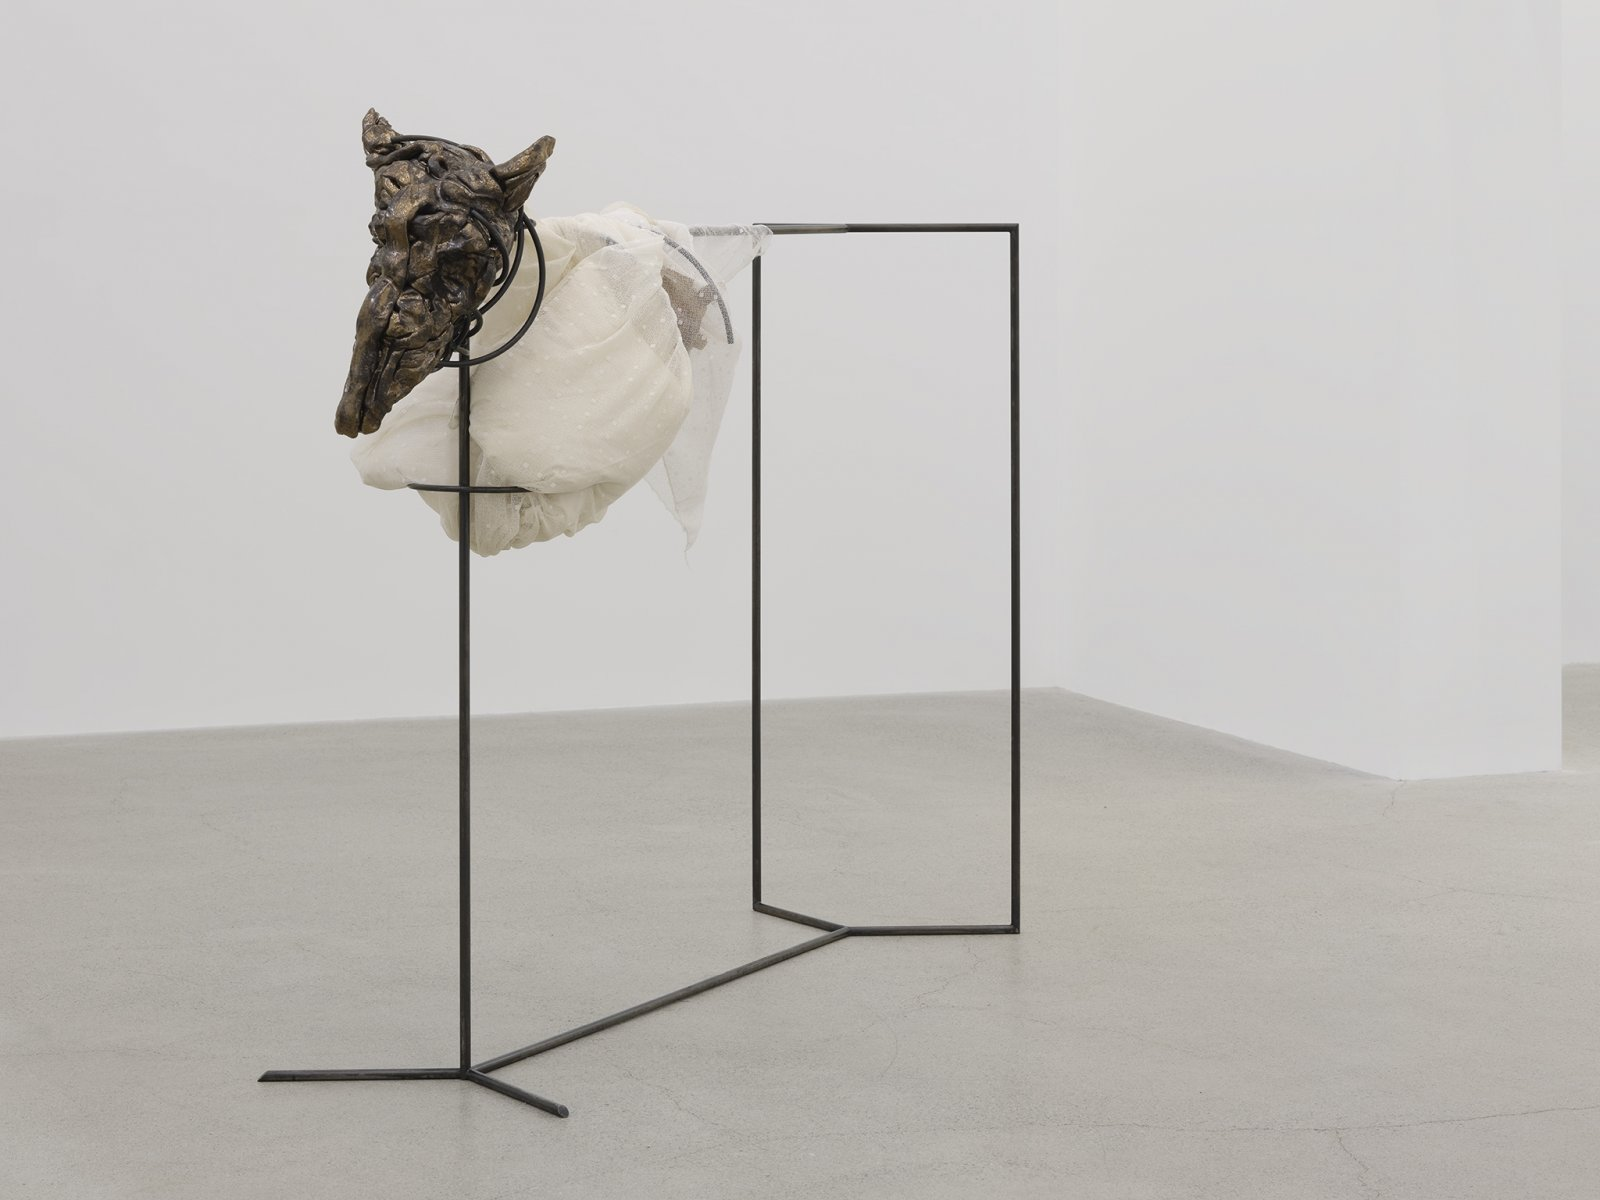 Rochelle Goldberg, Gatekeeper: And still it breathes within this body, 2019, glazed ceramic, steel, curtain, polyester fabric, acrylic, pillow, 58 x 21 x 64 in. (146 x 52 x 163 cm) by Rochelle Goldberg